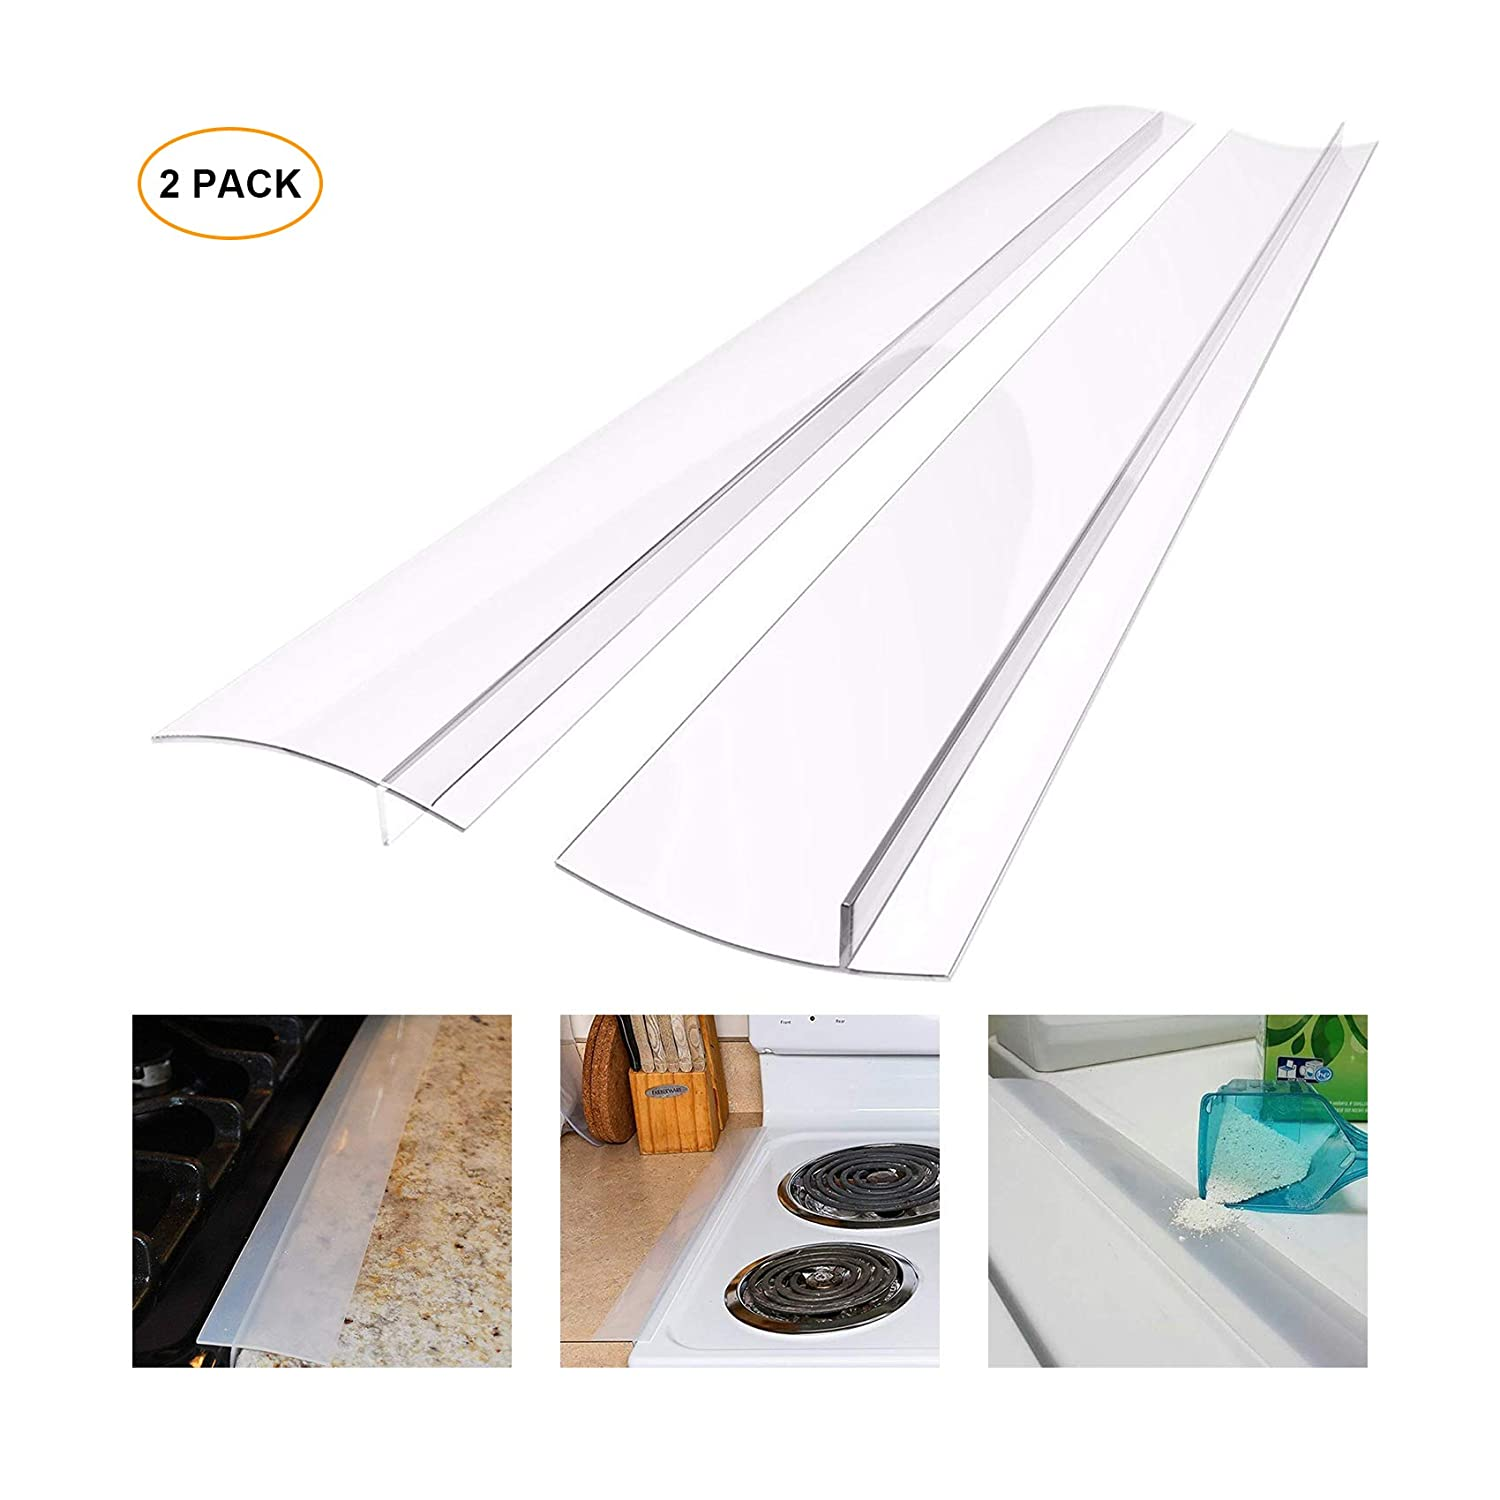 Silicone Stove Counter Gap Cover, Heat Resistant Kitchen Stove Counter Silicone Gap Filler Cover Seals Spills Between Counter Stovetop Oven Washer Dryer, 2 Pack (21 inch, Translucent White)